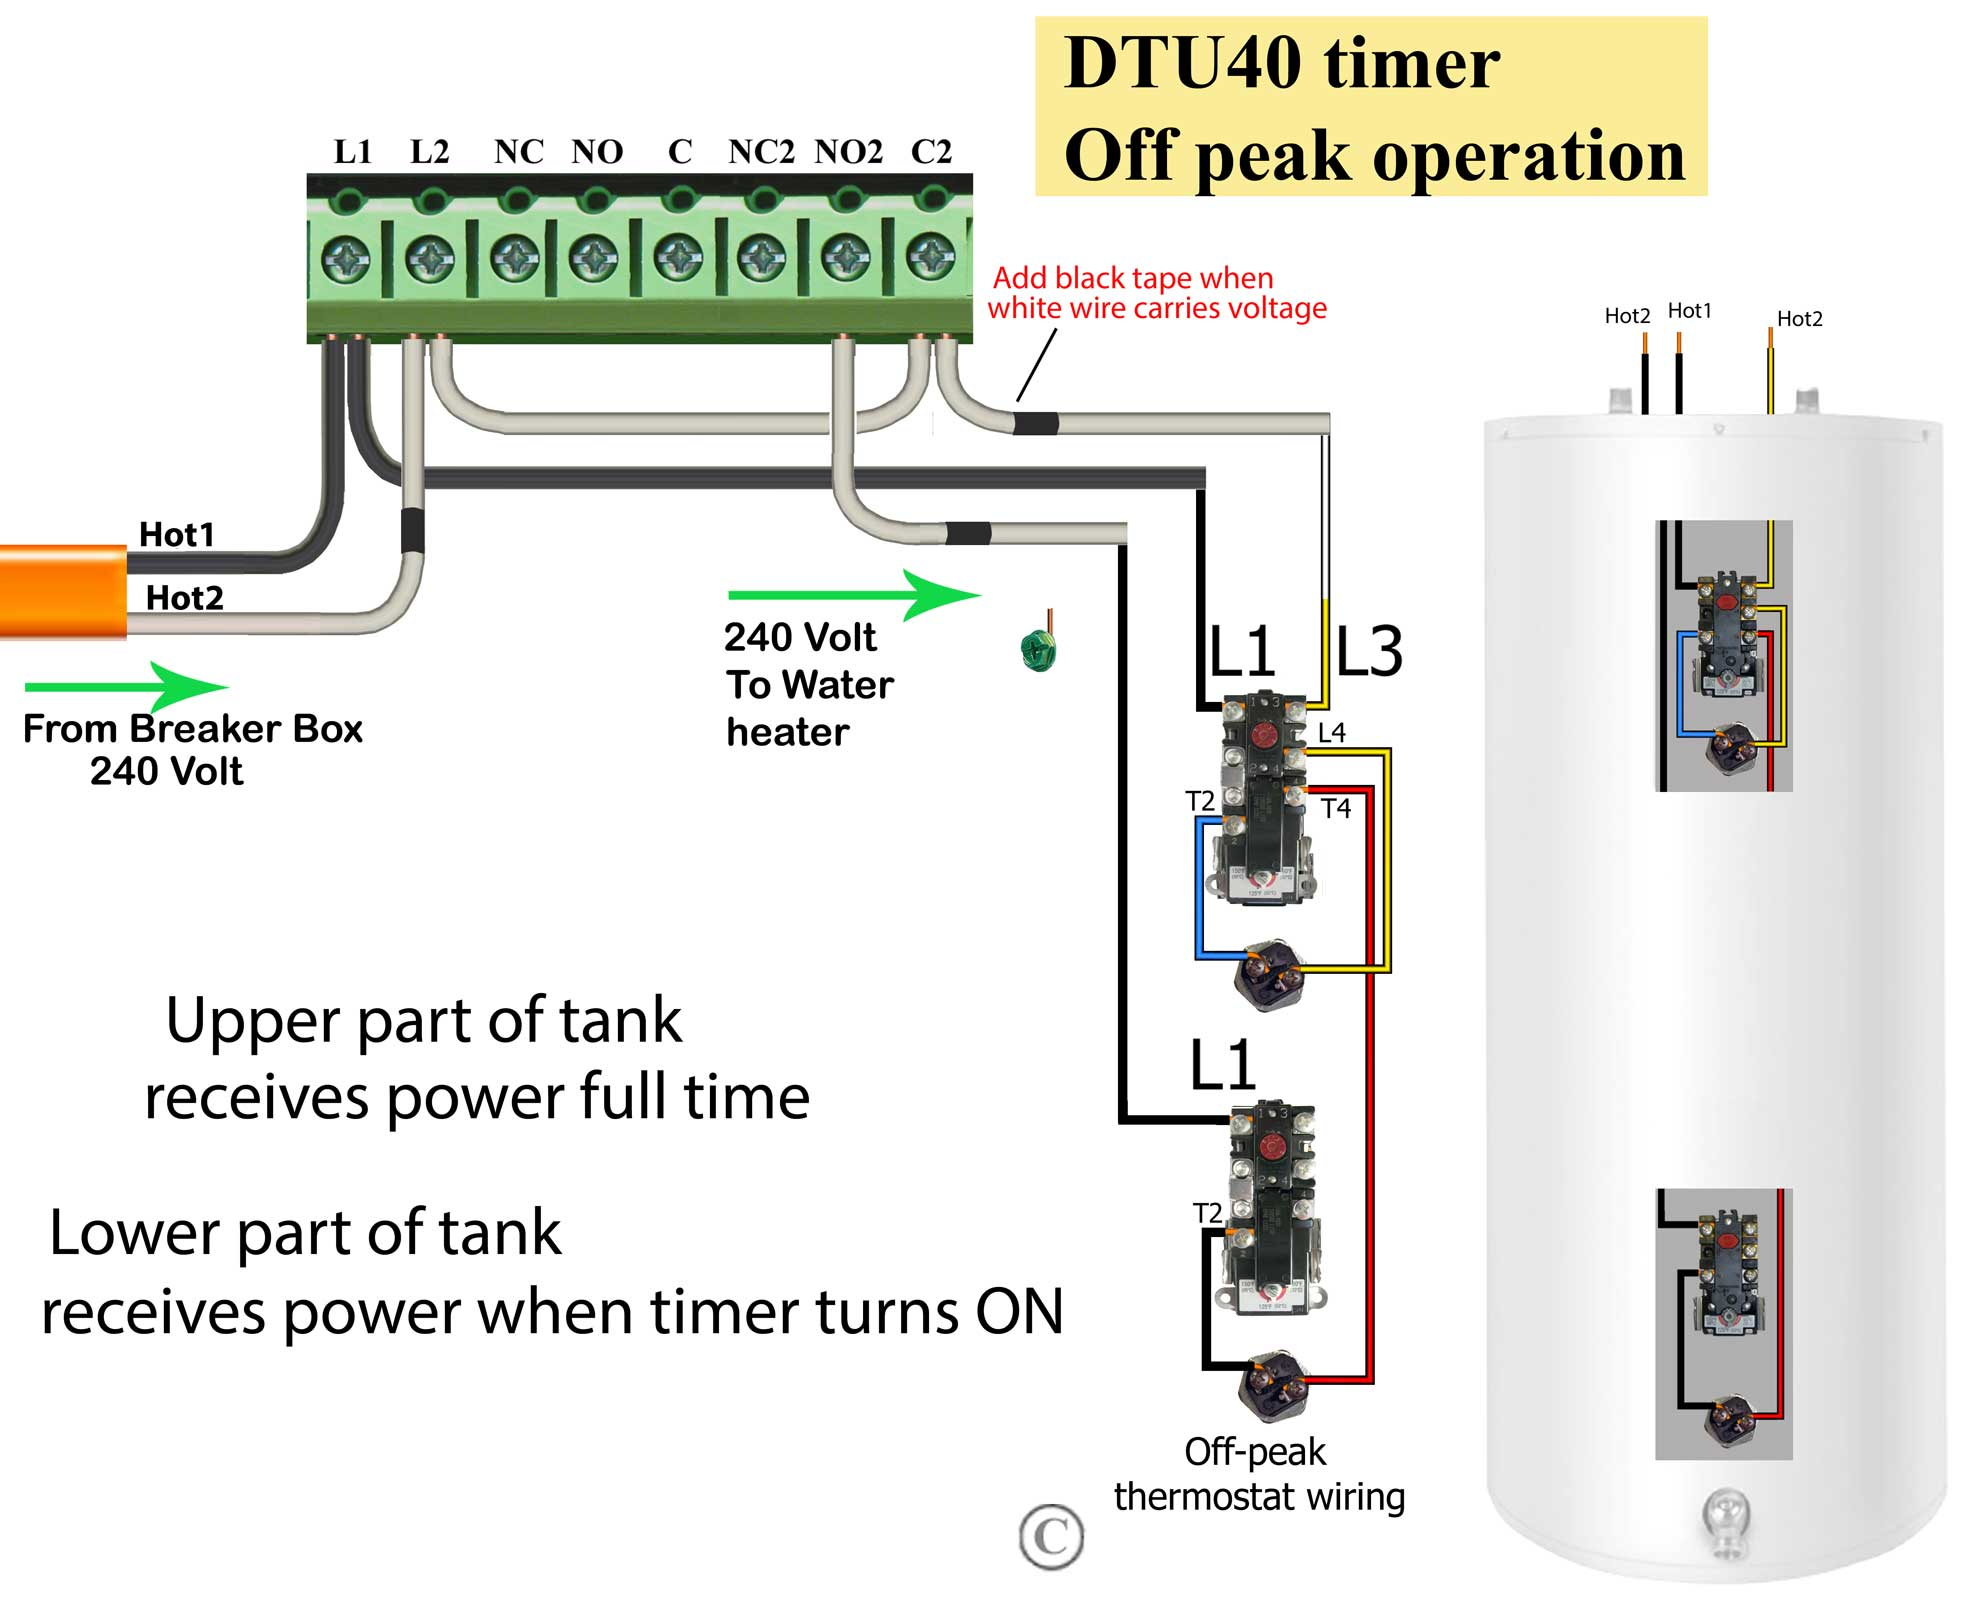 how to wire tork dtu40 timer tork dtu timer off peak wire water heater so lower